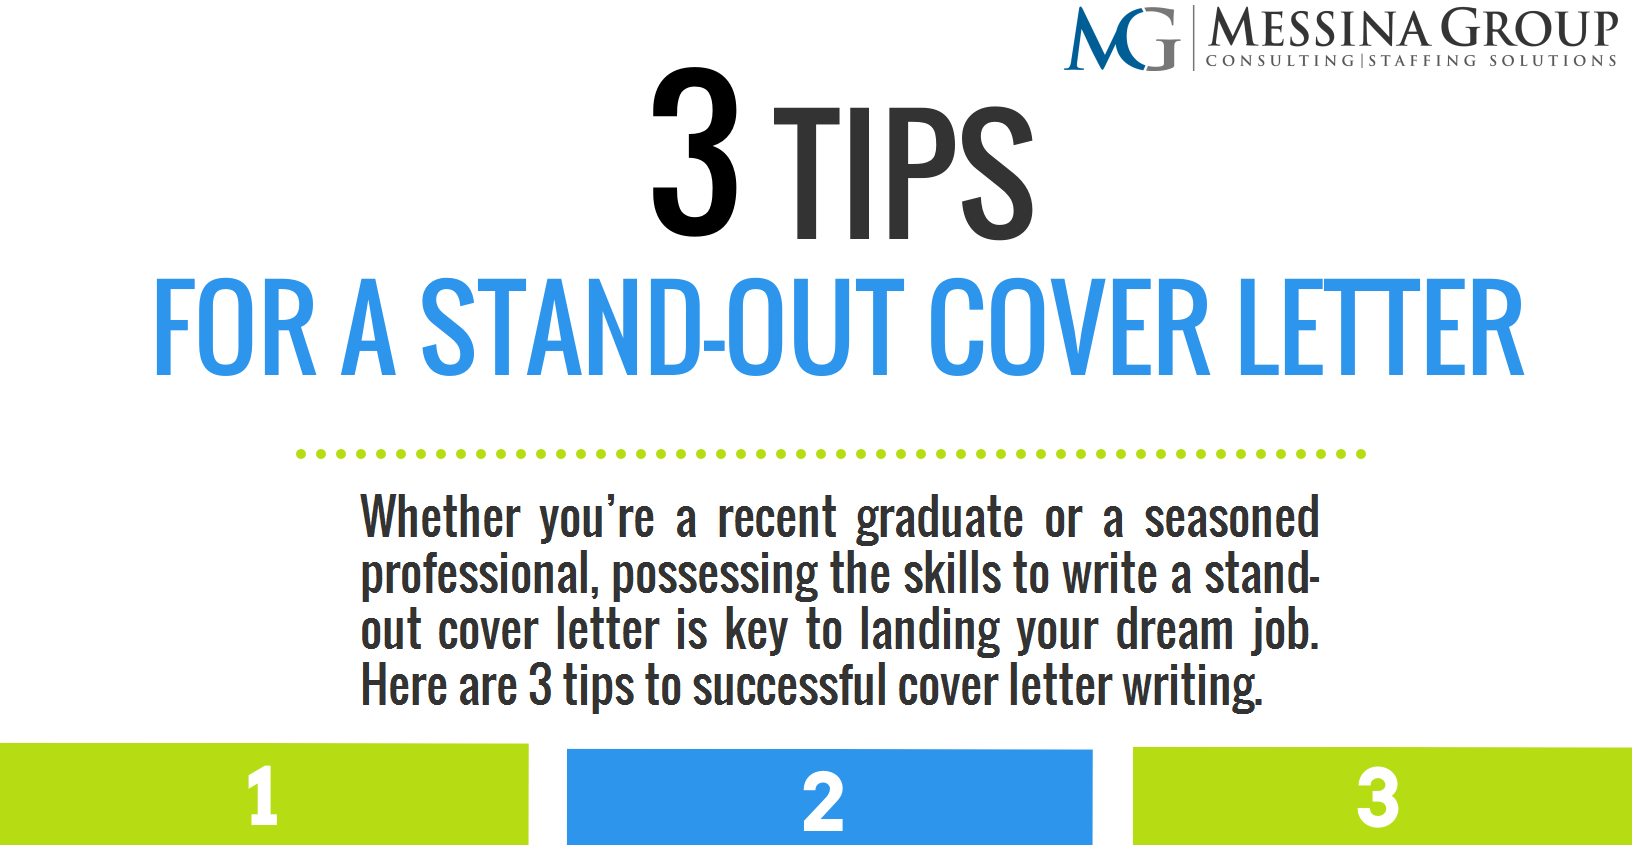 tips for stand out cover letter writing